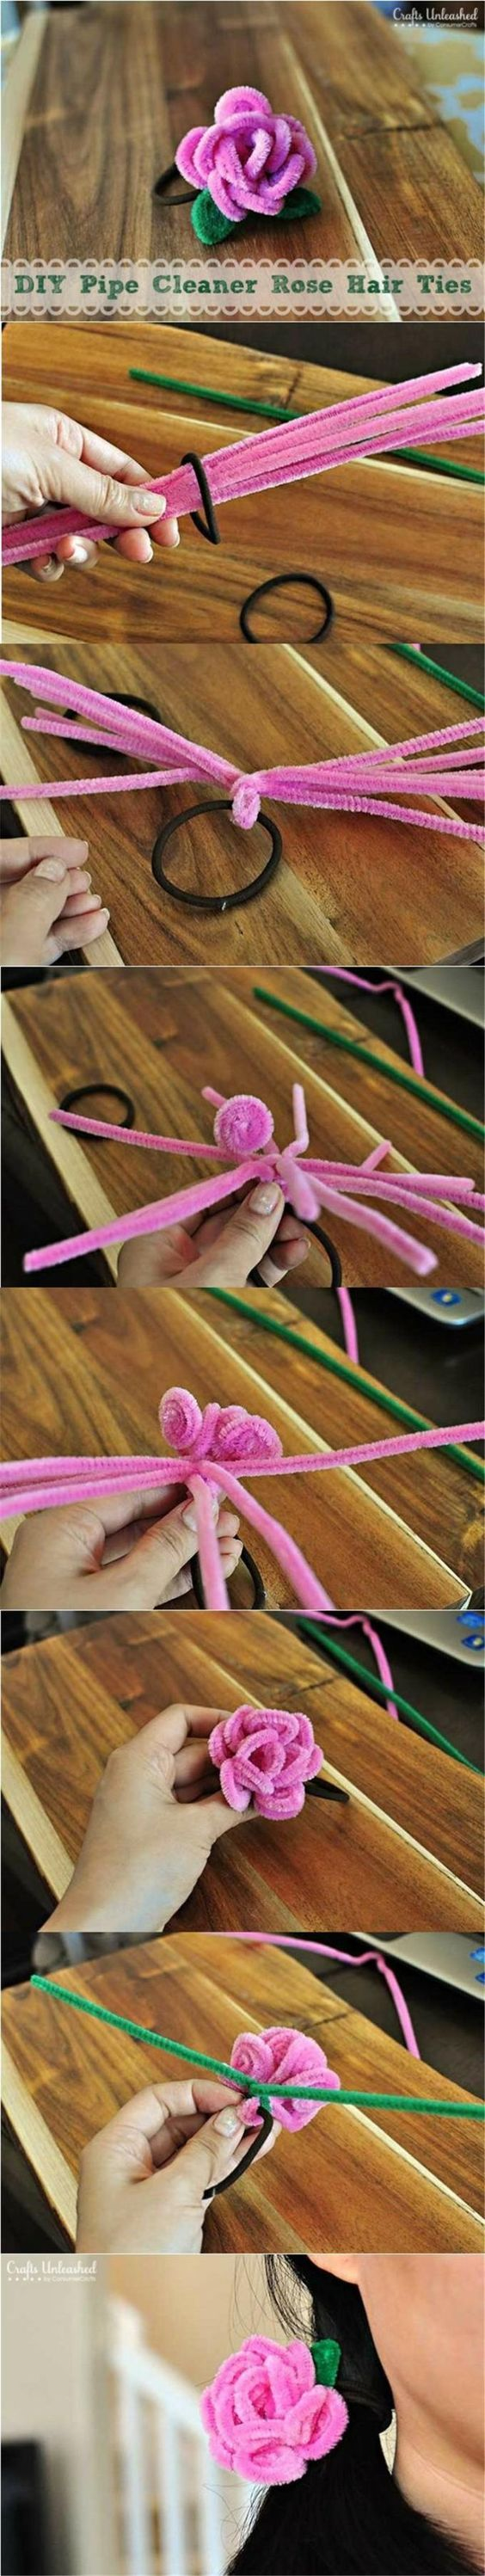 Hair Ties Made with DIY Pipe Cleaner Roses:                                                                                                                                                                                 Plus